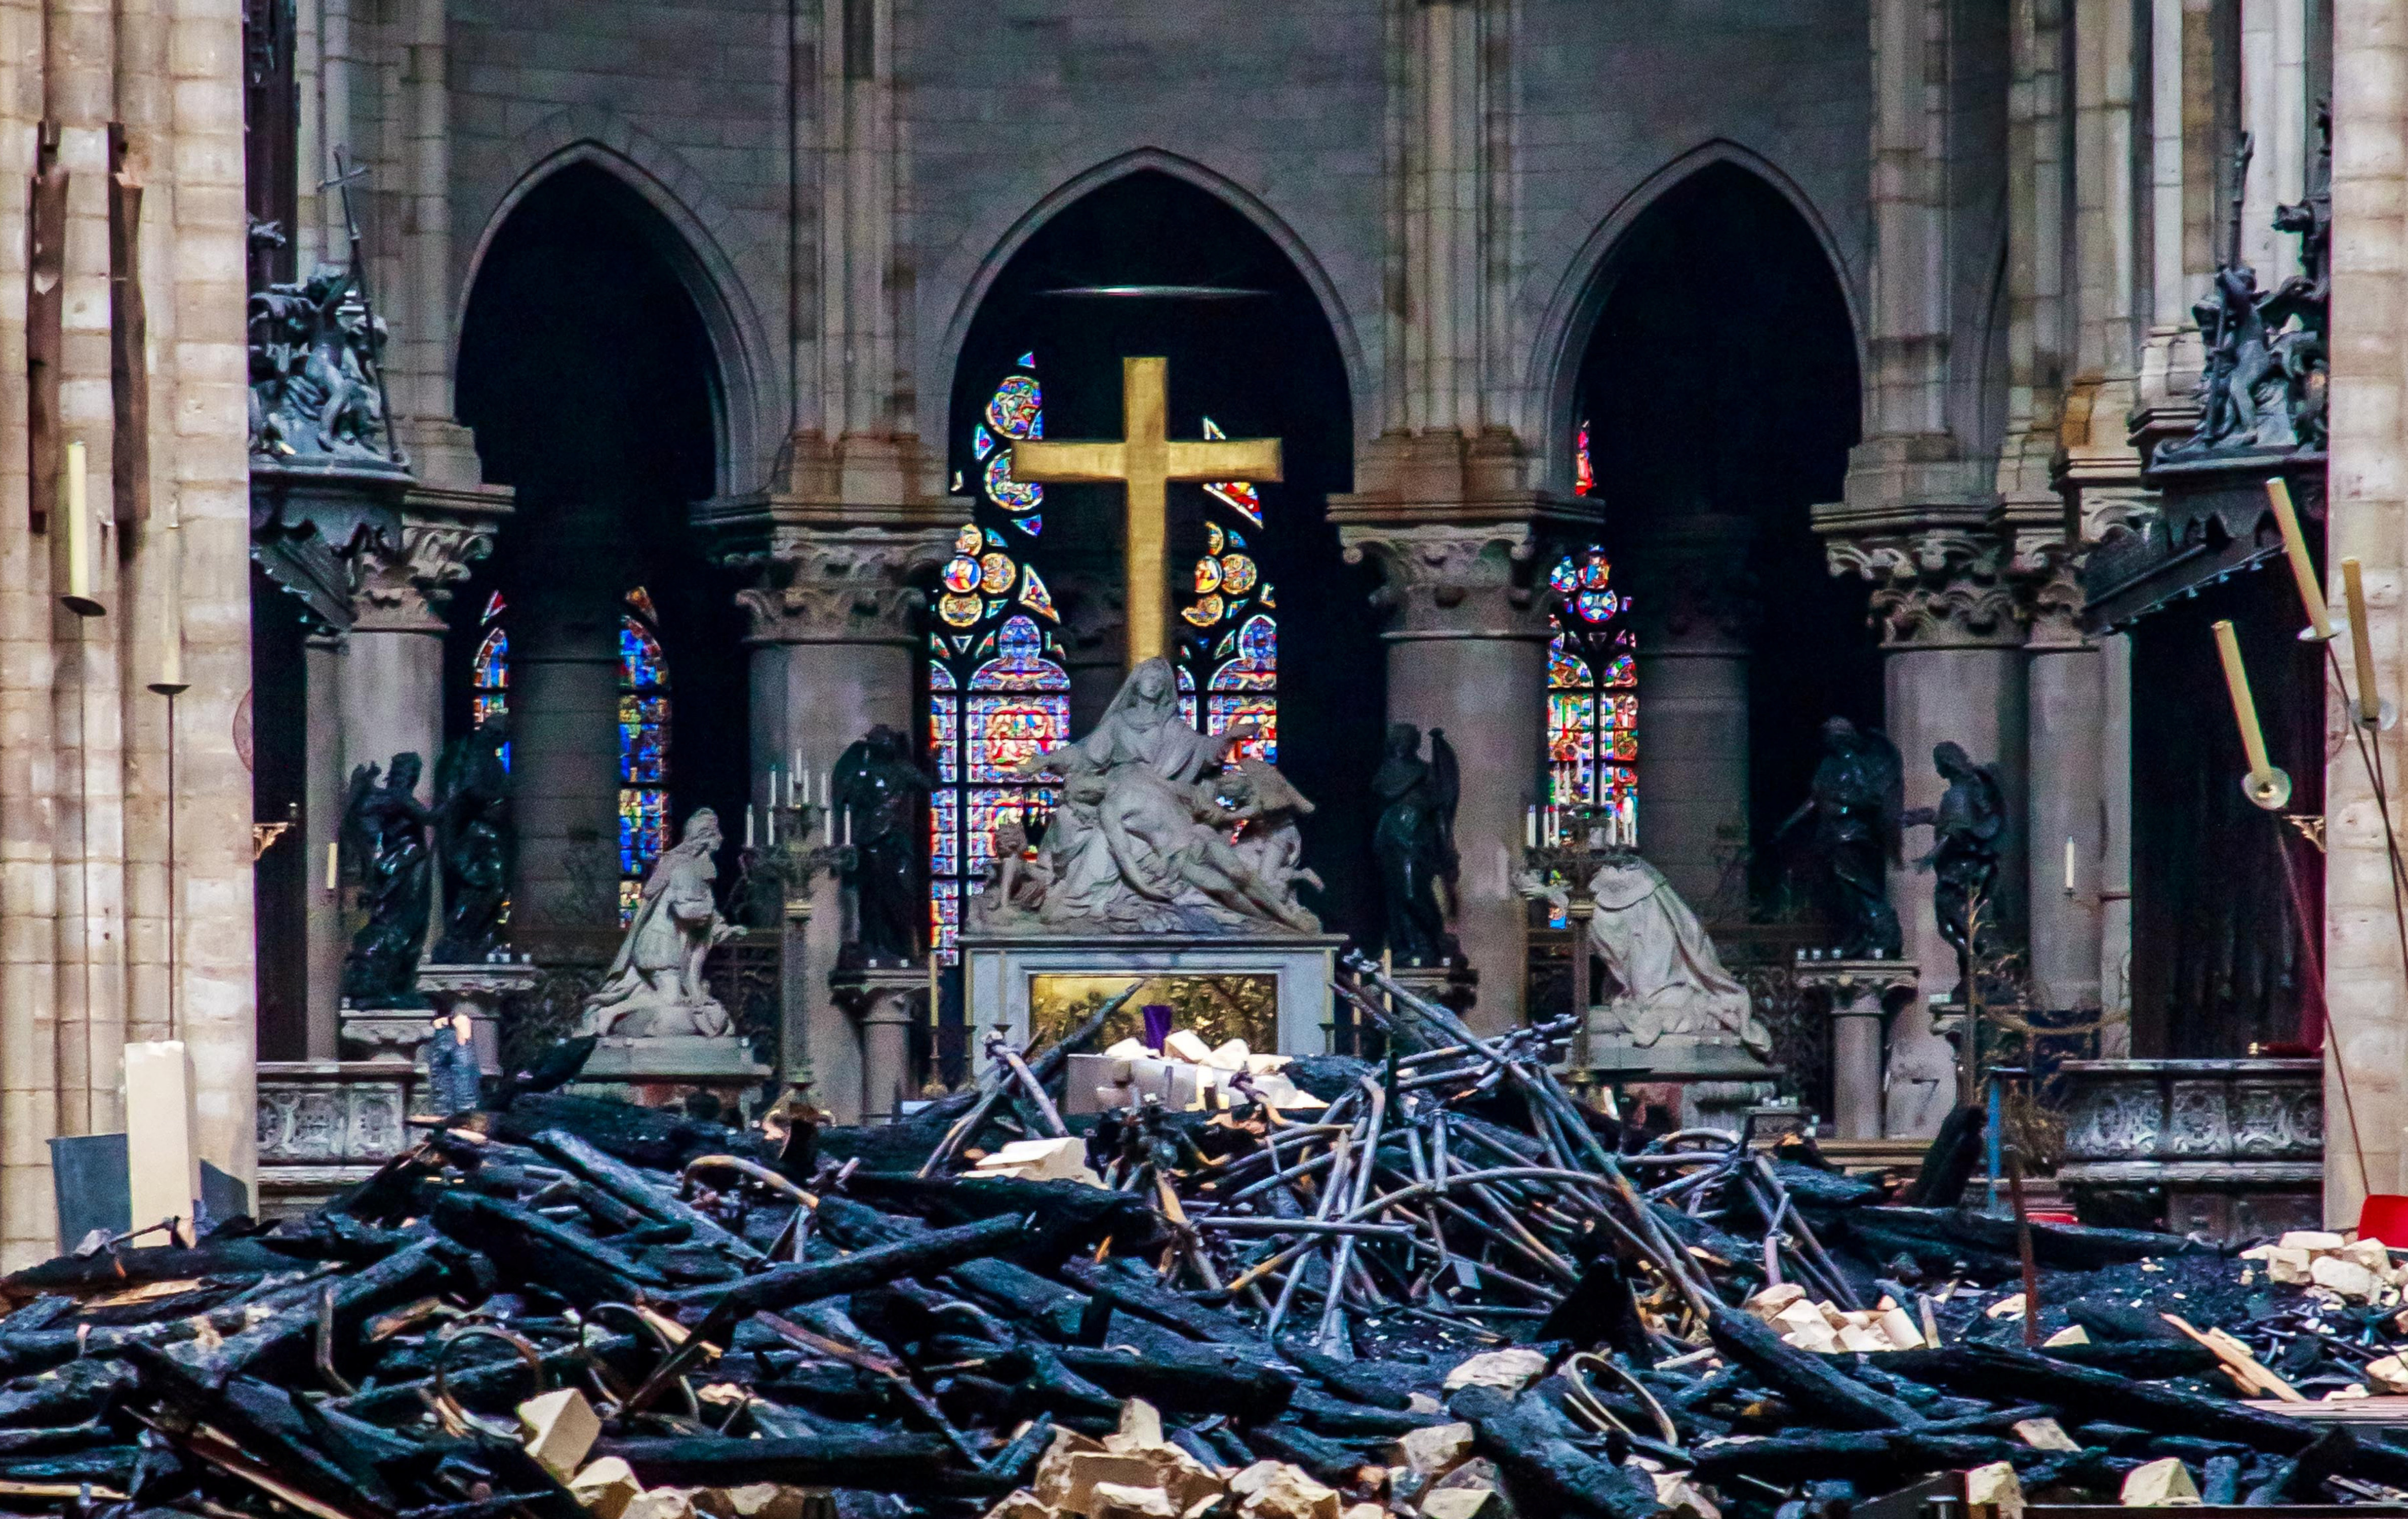 Blackened remains of Notre Dame's wooden roof framework lie on the cathedral floor.